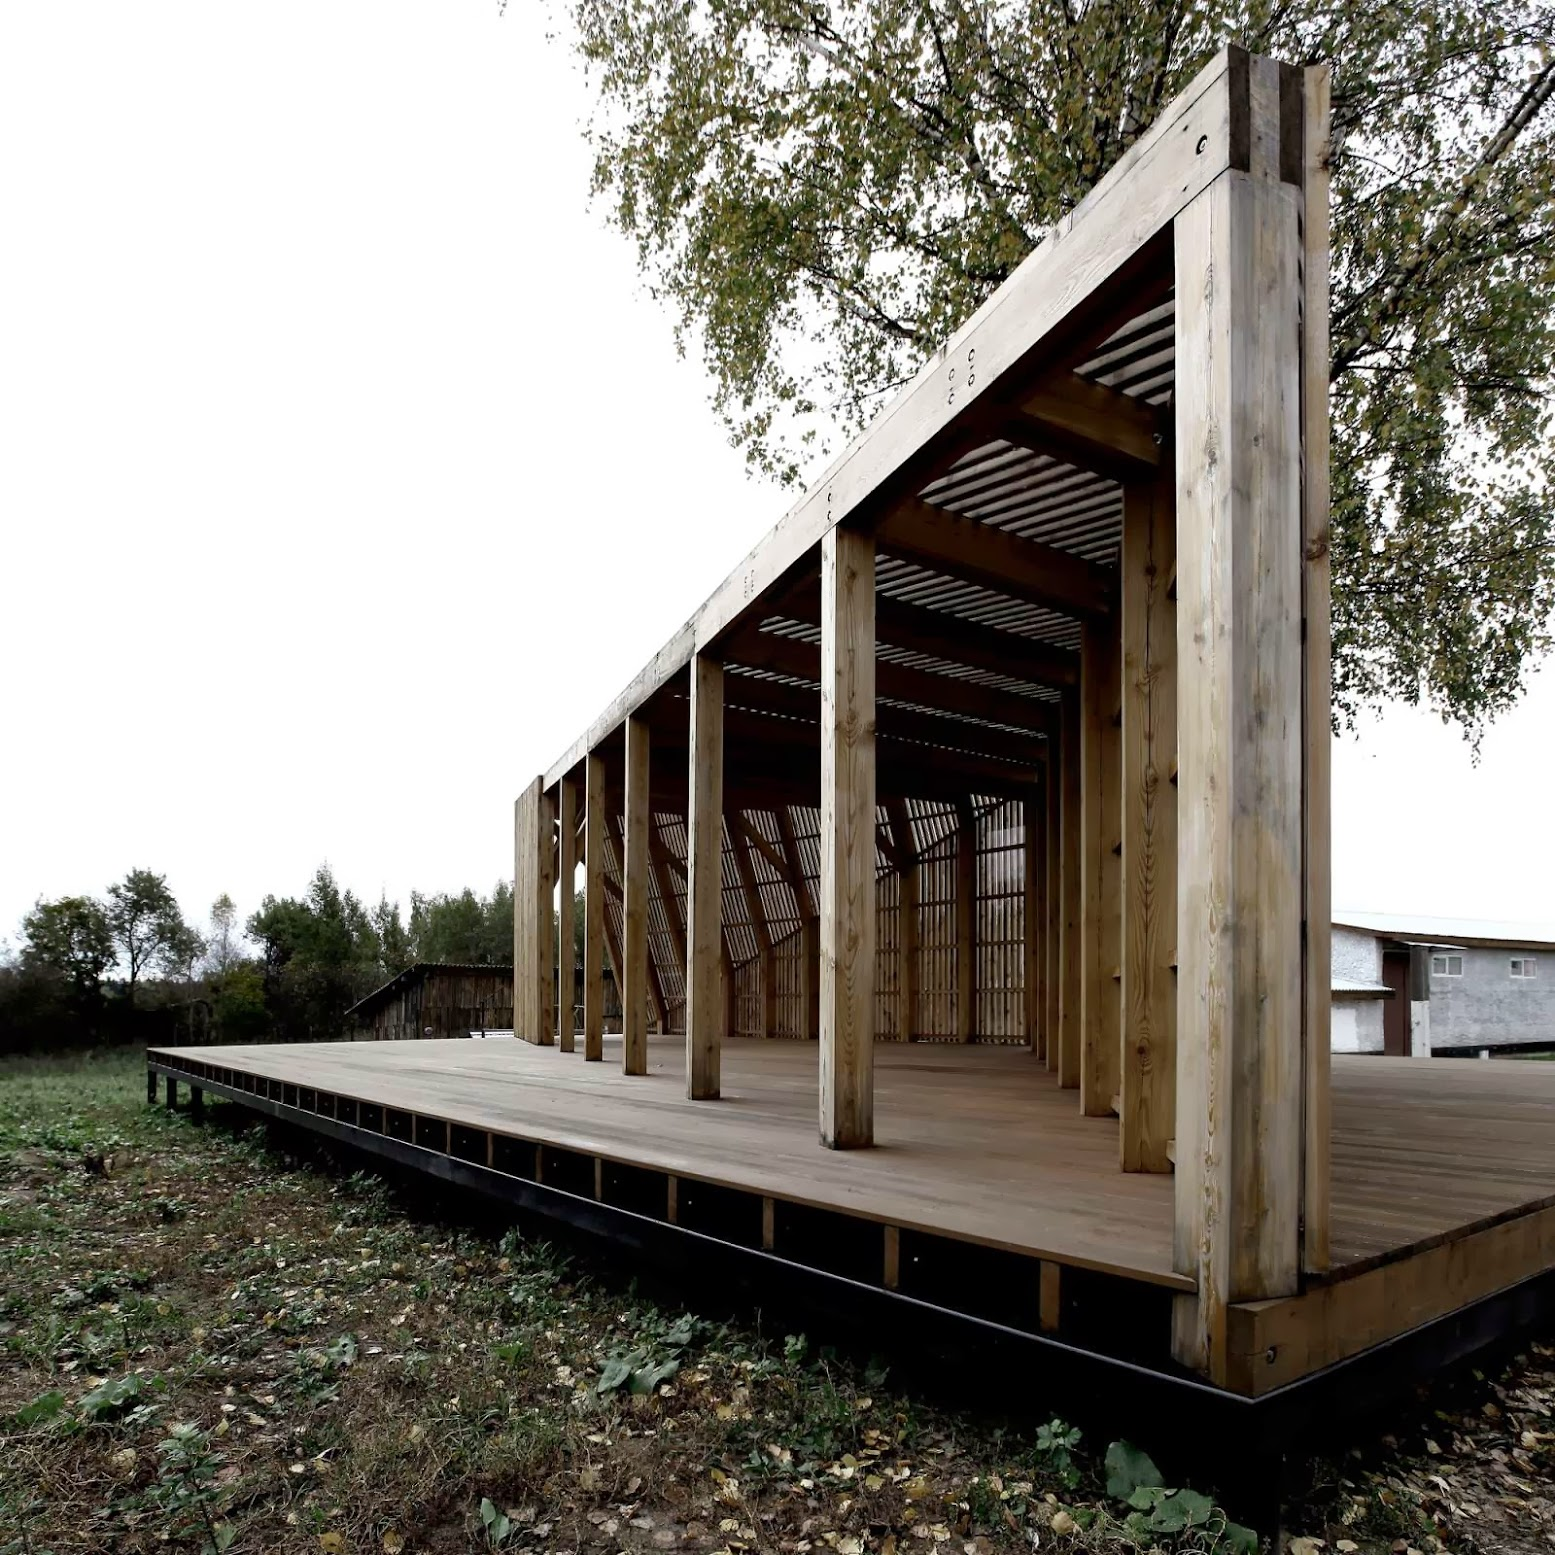 Mosca, Russia: [SUMMER HOUSE BY KHACHATURIAN ARCHITECTS]